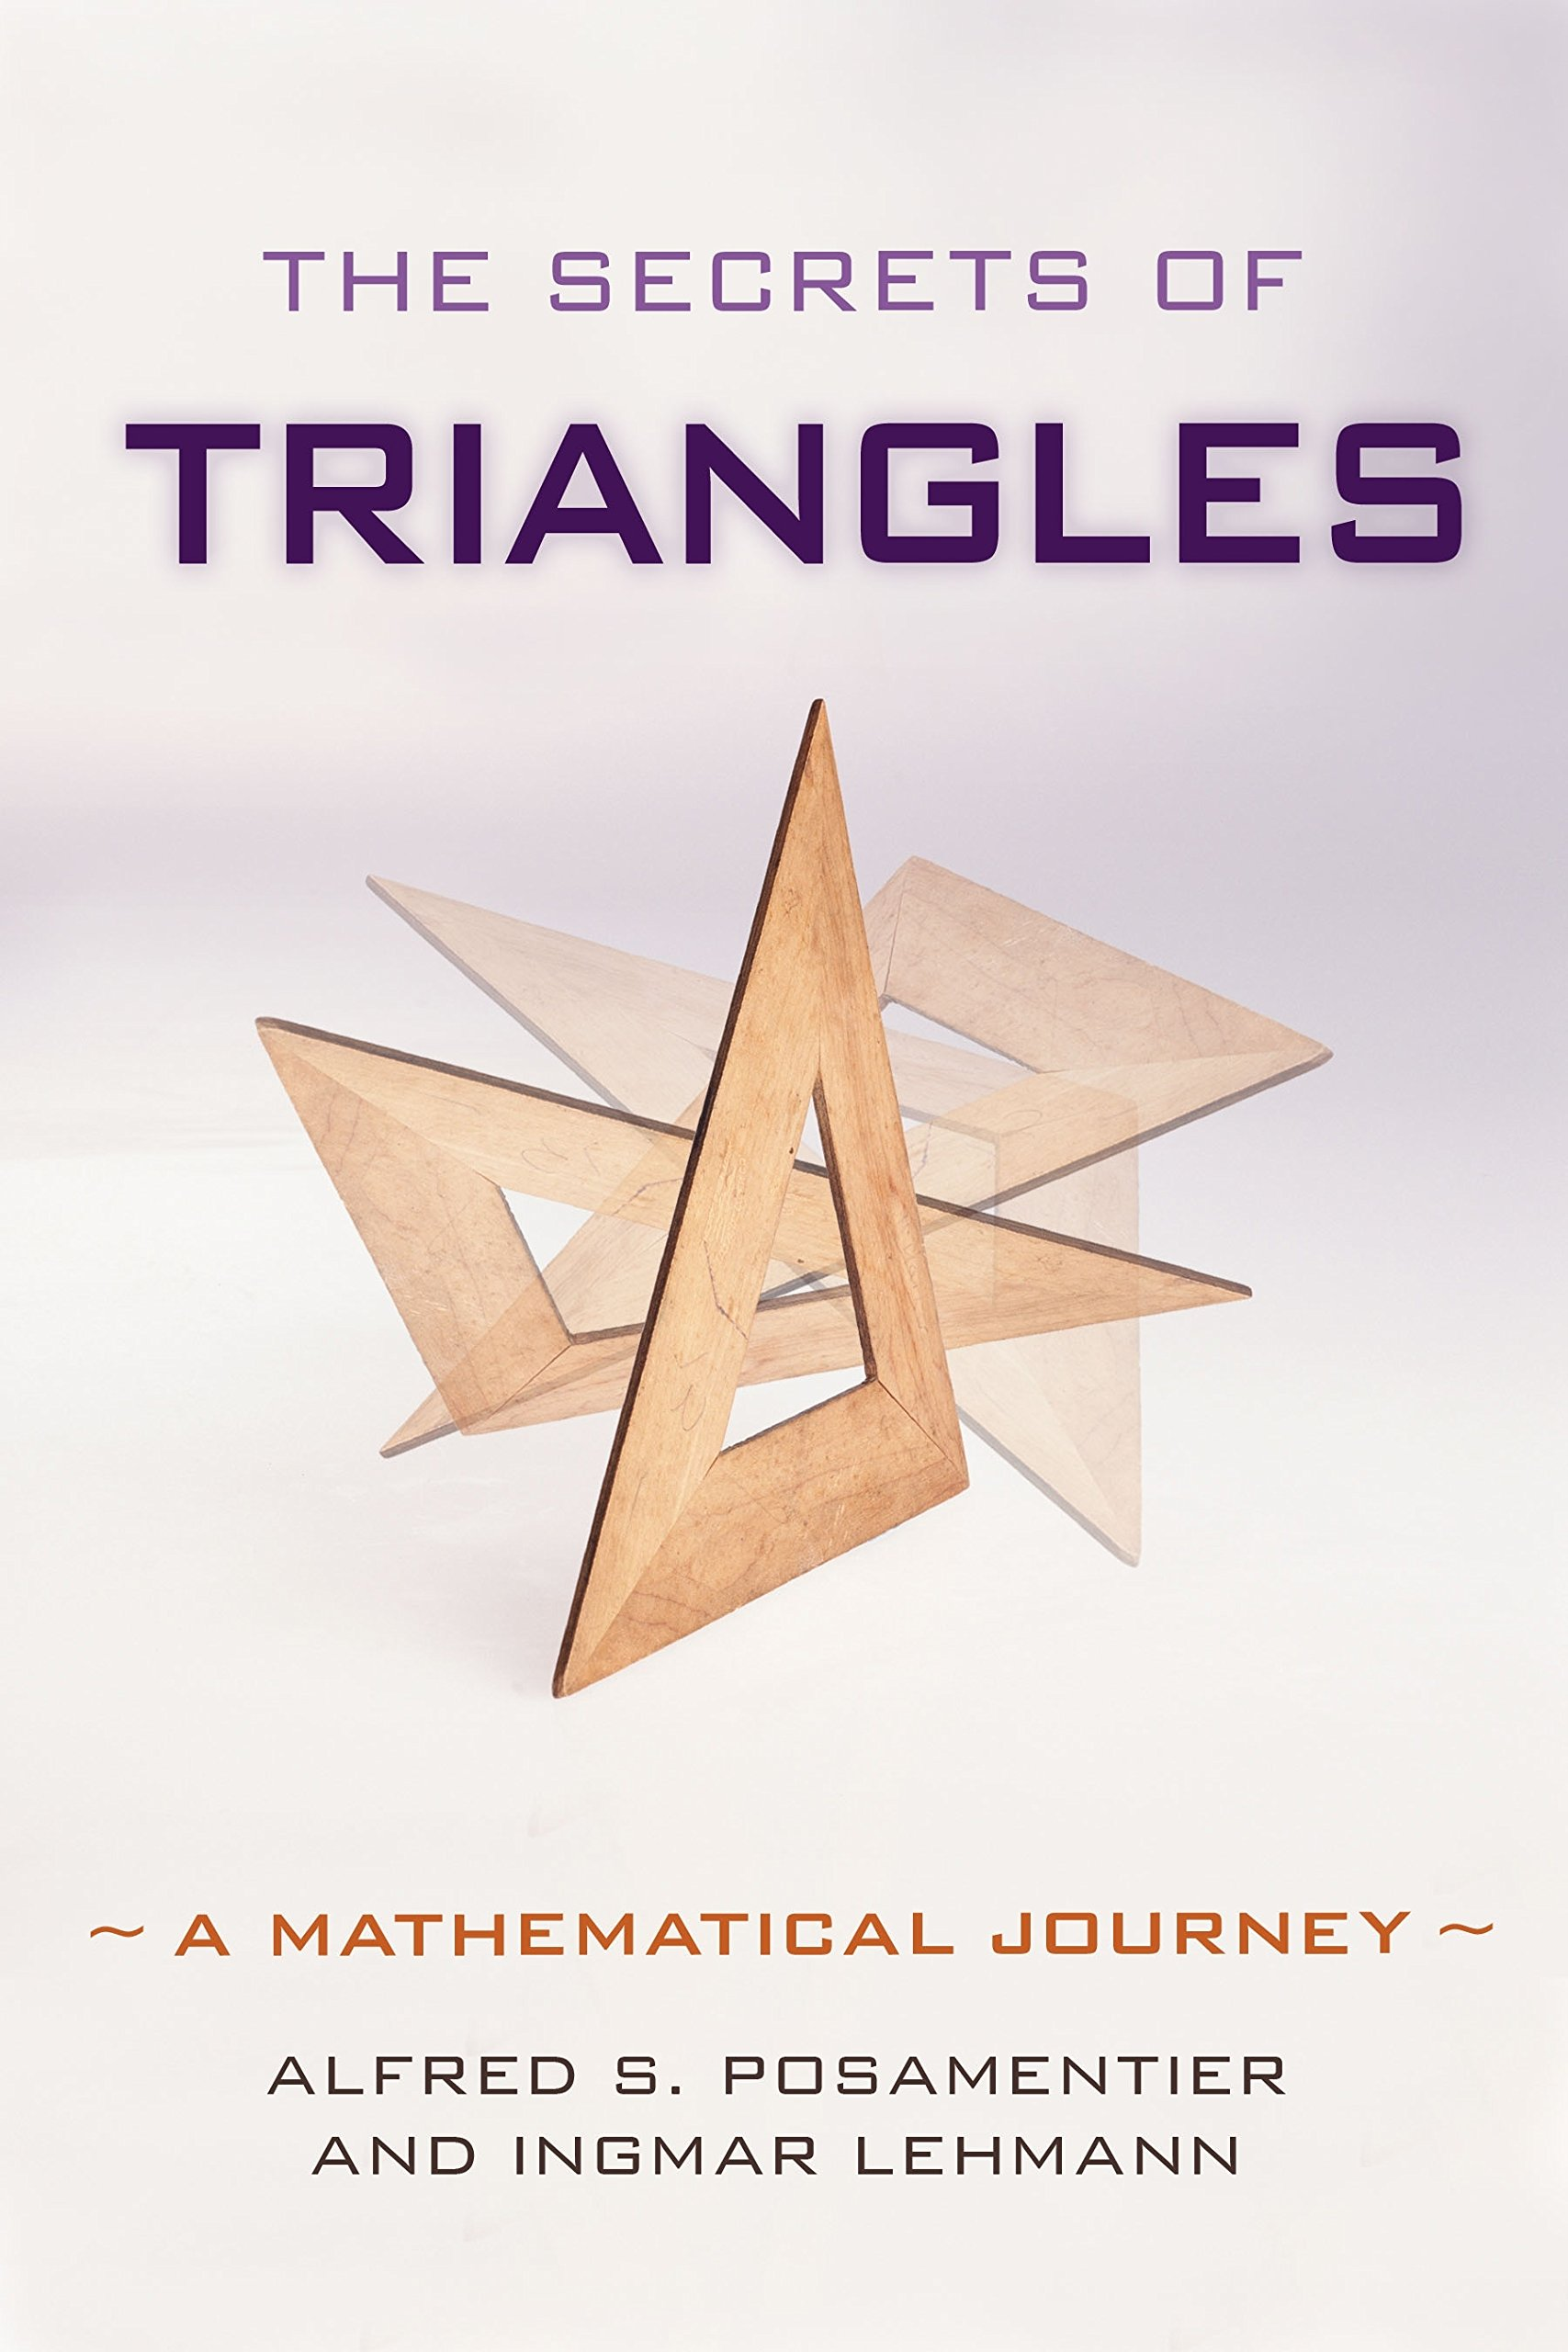 Buy the secrets of triangles a mathematical journey book online at buy the secrets of triangles a mathematical journey book online at low prices in india the secrets of triangles a mathematical journey reviews ratings fandeluxe Image collections